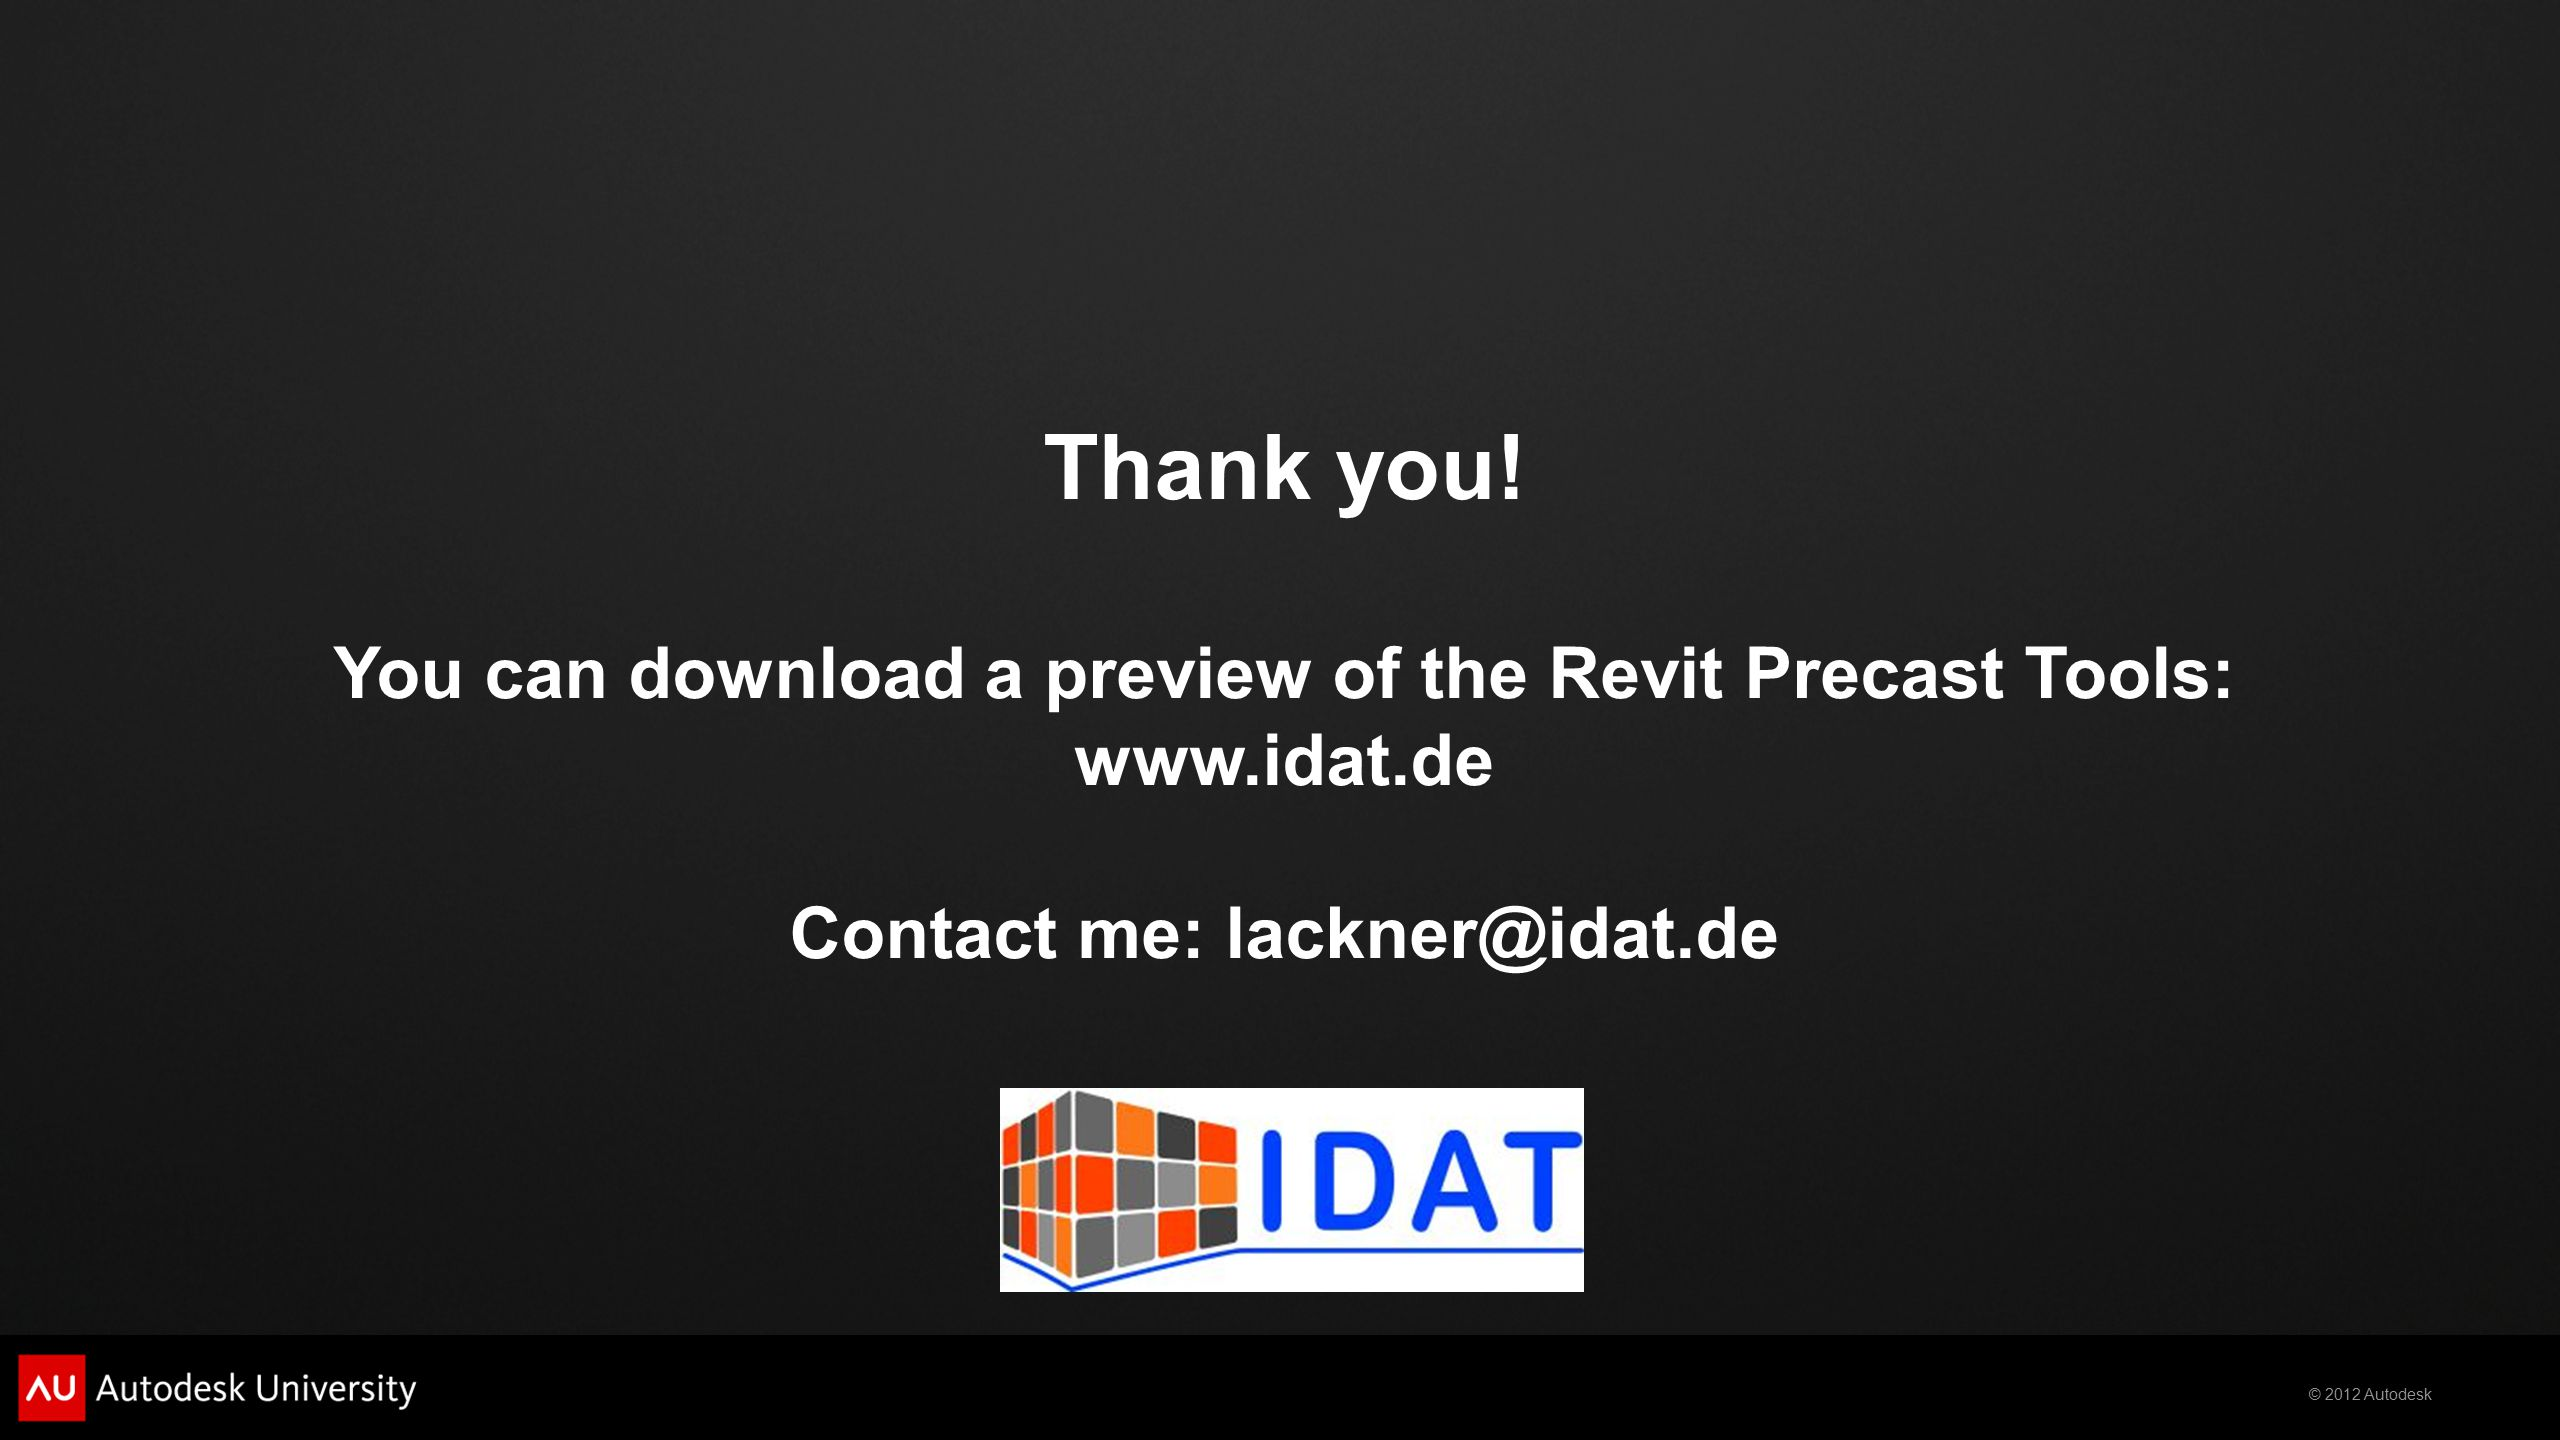 Thank you. You can download a preview of the Revit Precast Tools: www